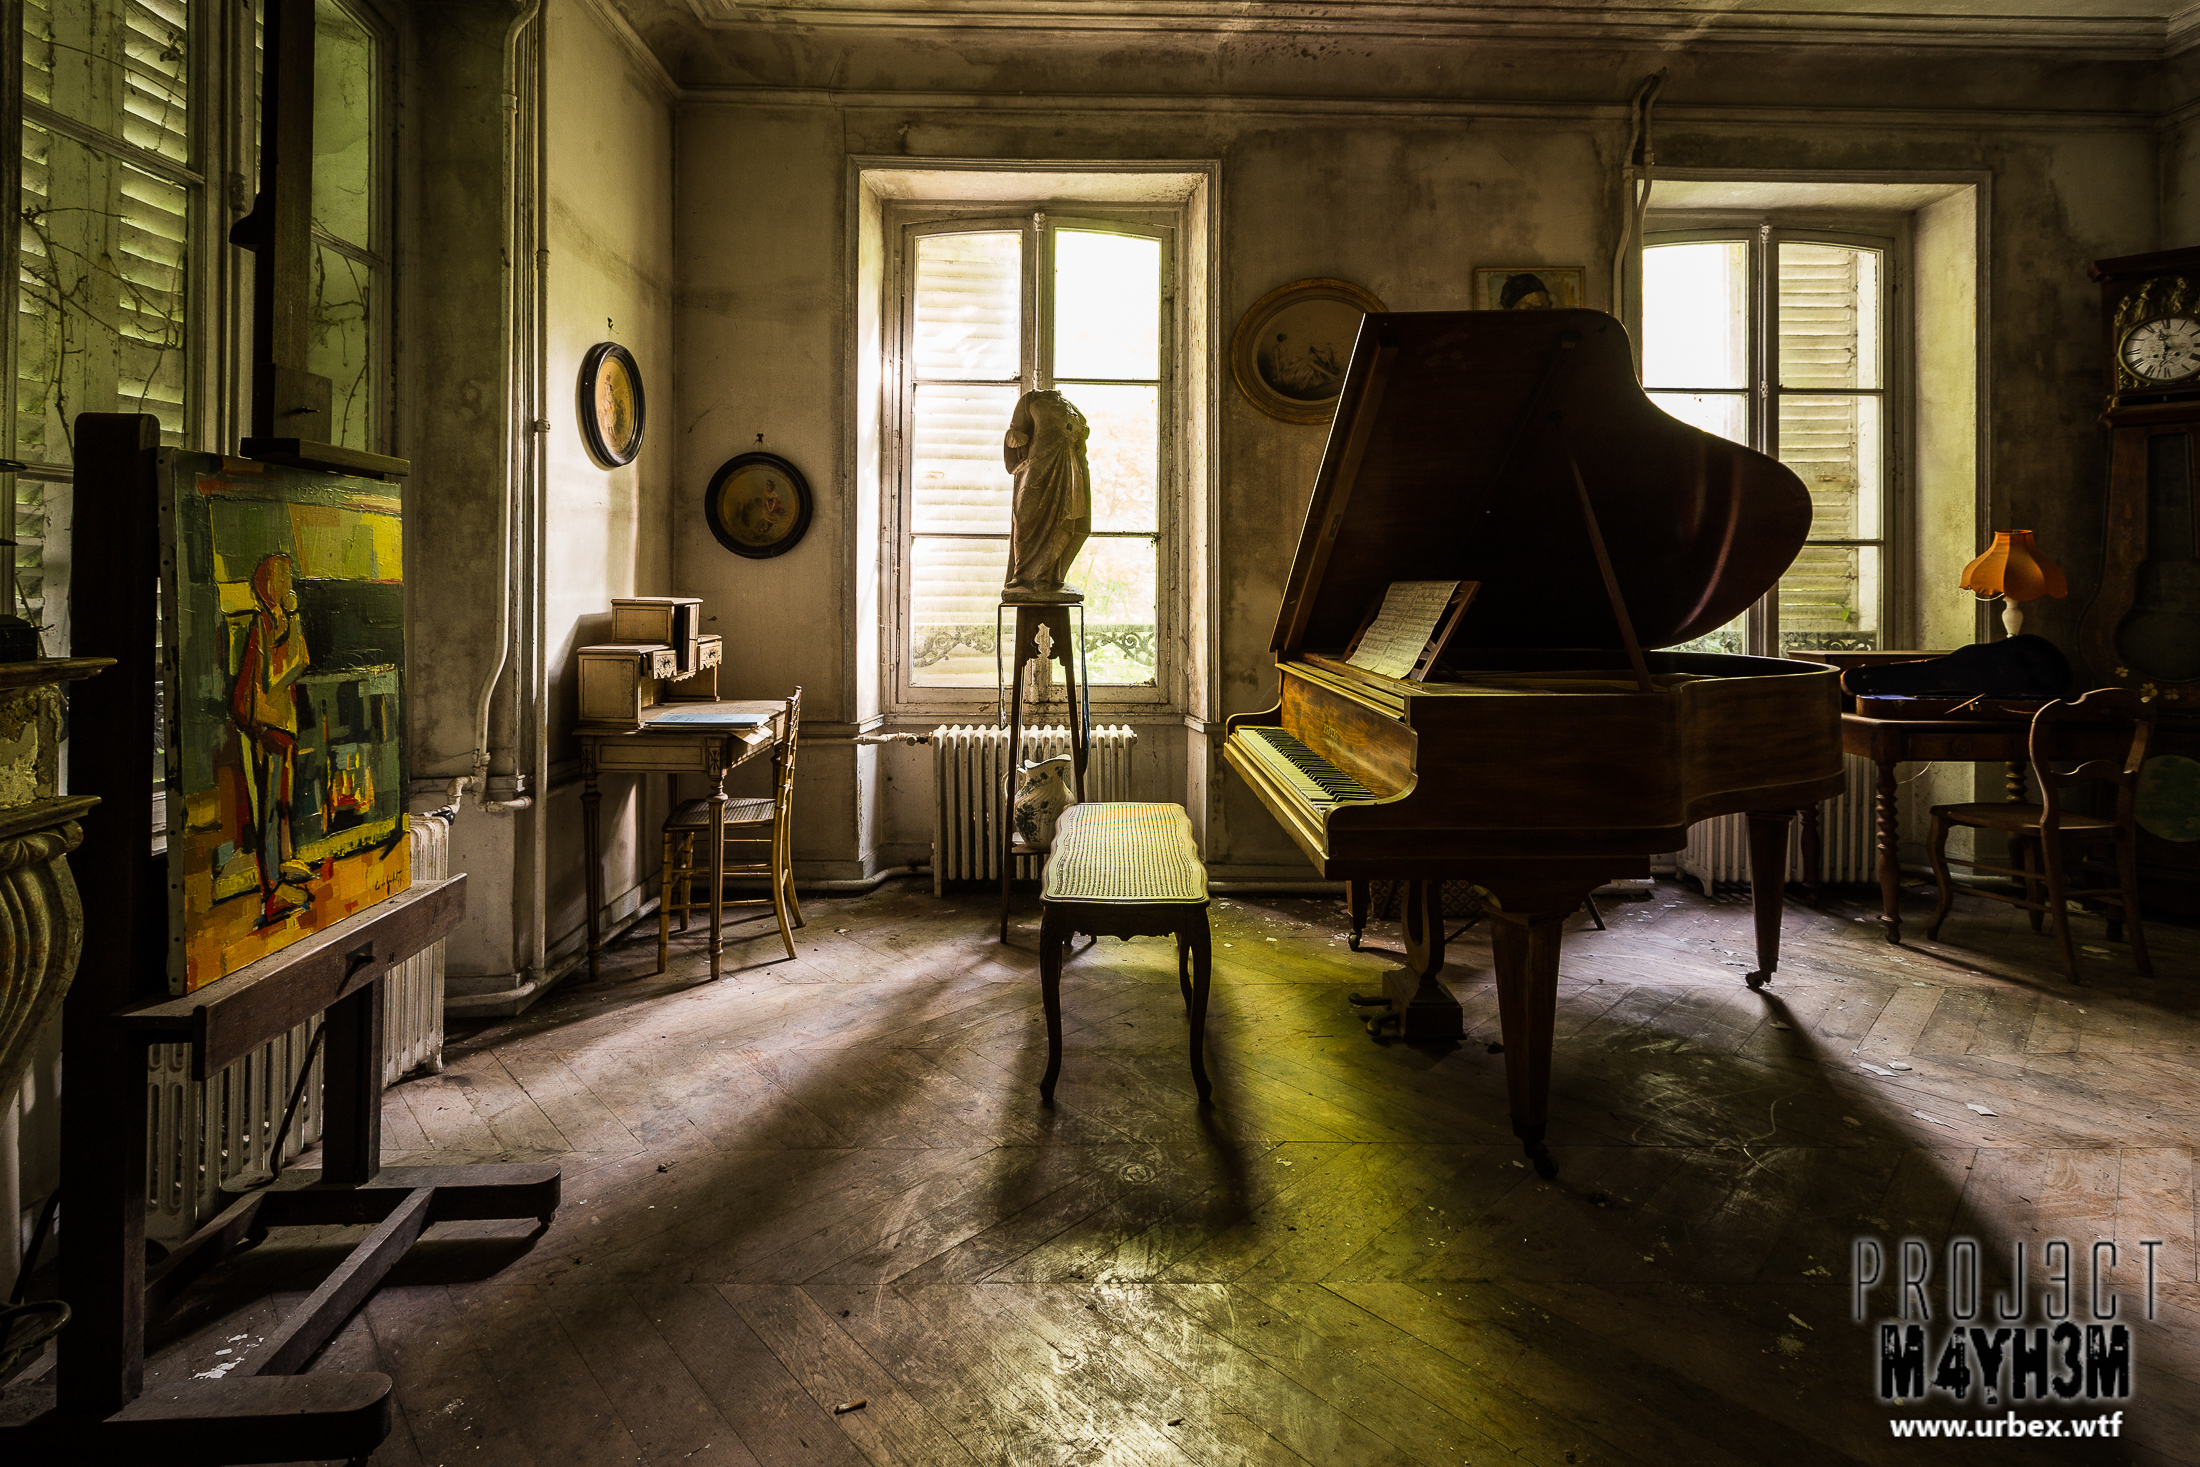 An empty Château full of Musical instruments